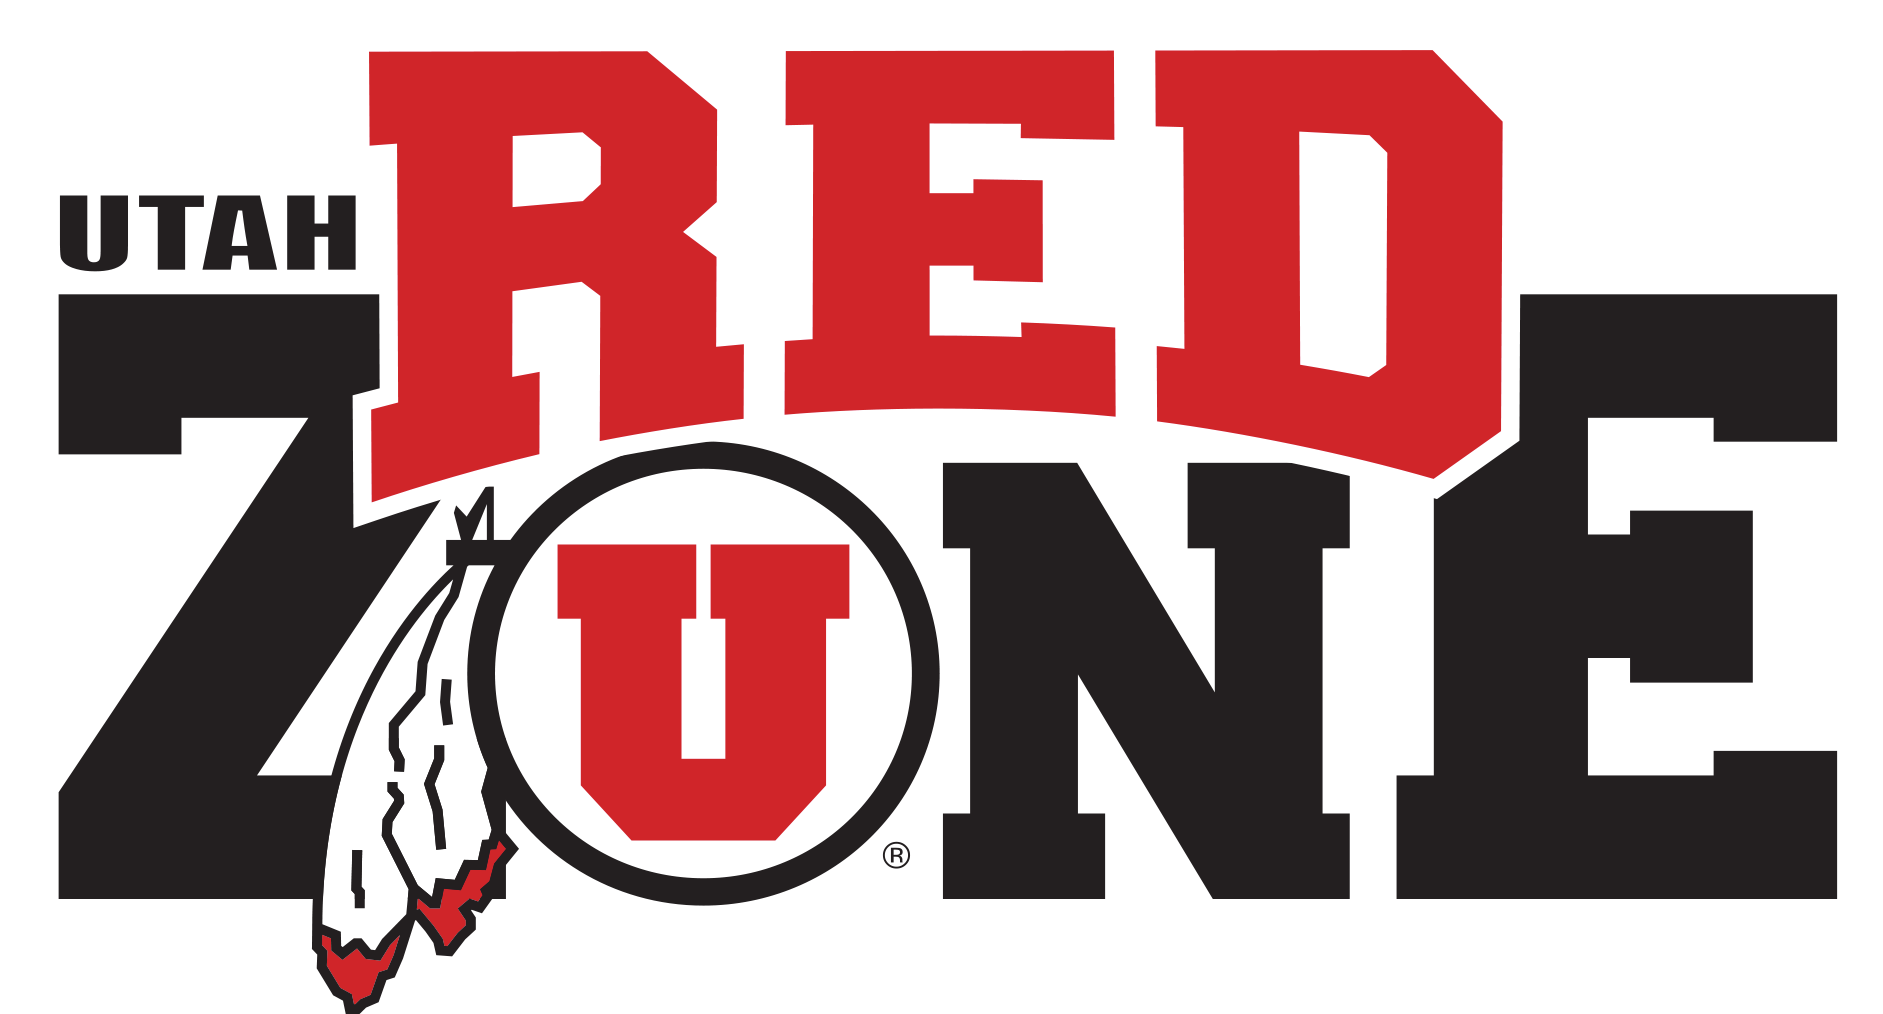 U of U Red Zone logo